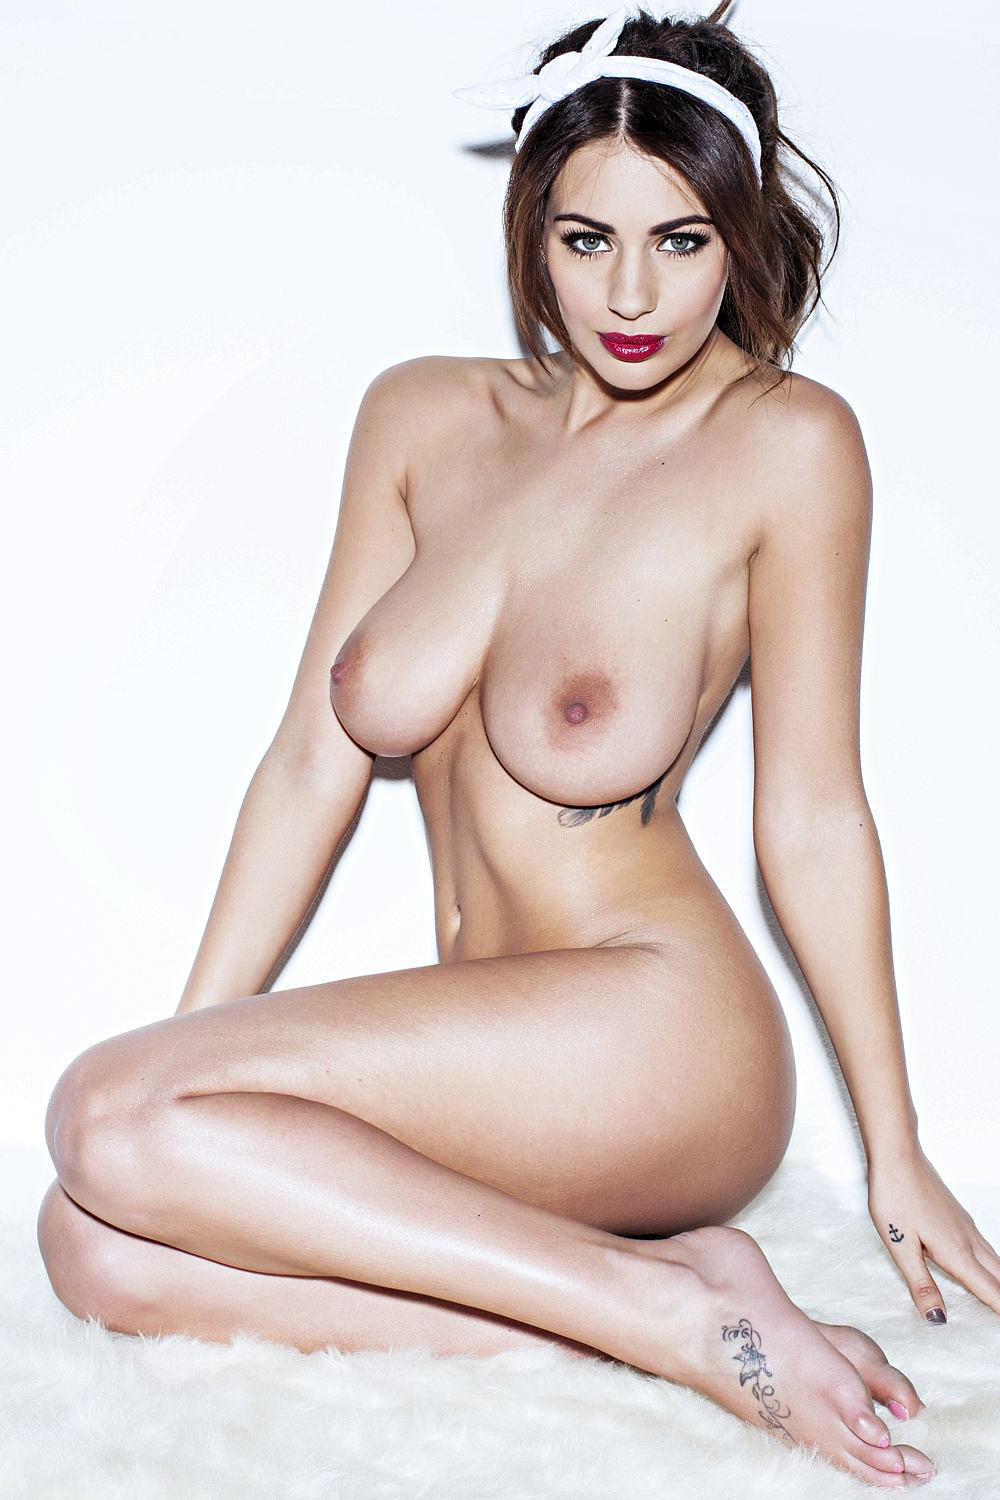 Οι Holly Peers, Rosie Jones, Rhian Sugden, Kelly_Hall topless